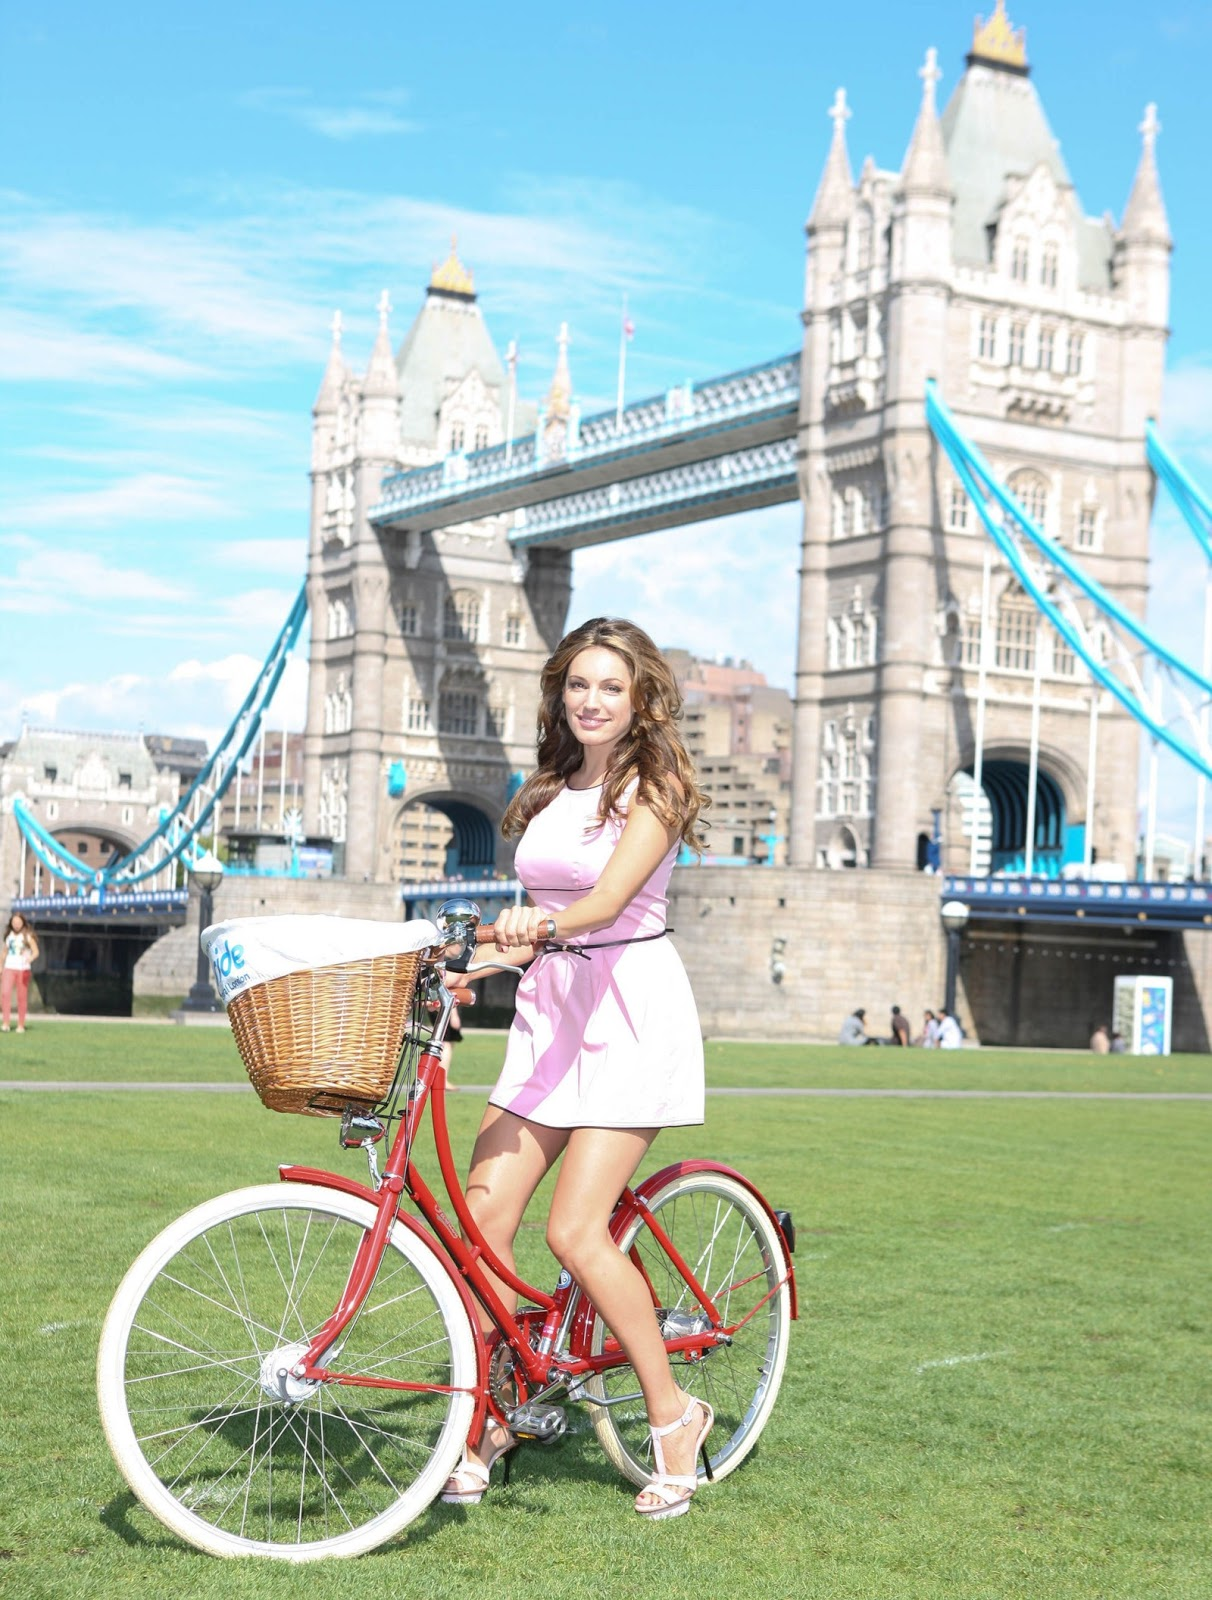 http://4.bp.blogspot.com/-rjTRUfriZCI/TmCh5iXjOsI/AAAAAAAAEyA/Wf2AIv3wrUQ/s1600/Kelly-Brook-at-Mayor-of-London-Skyride-Launch-0tjn16.jpg